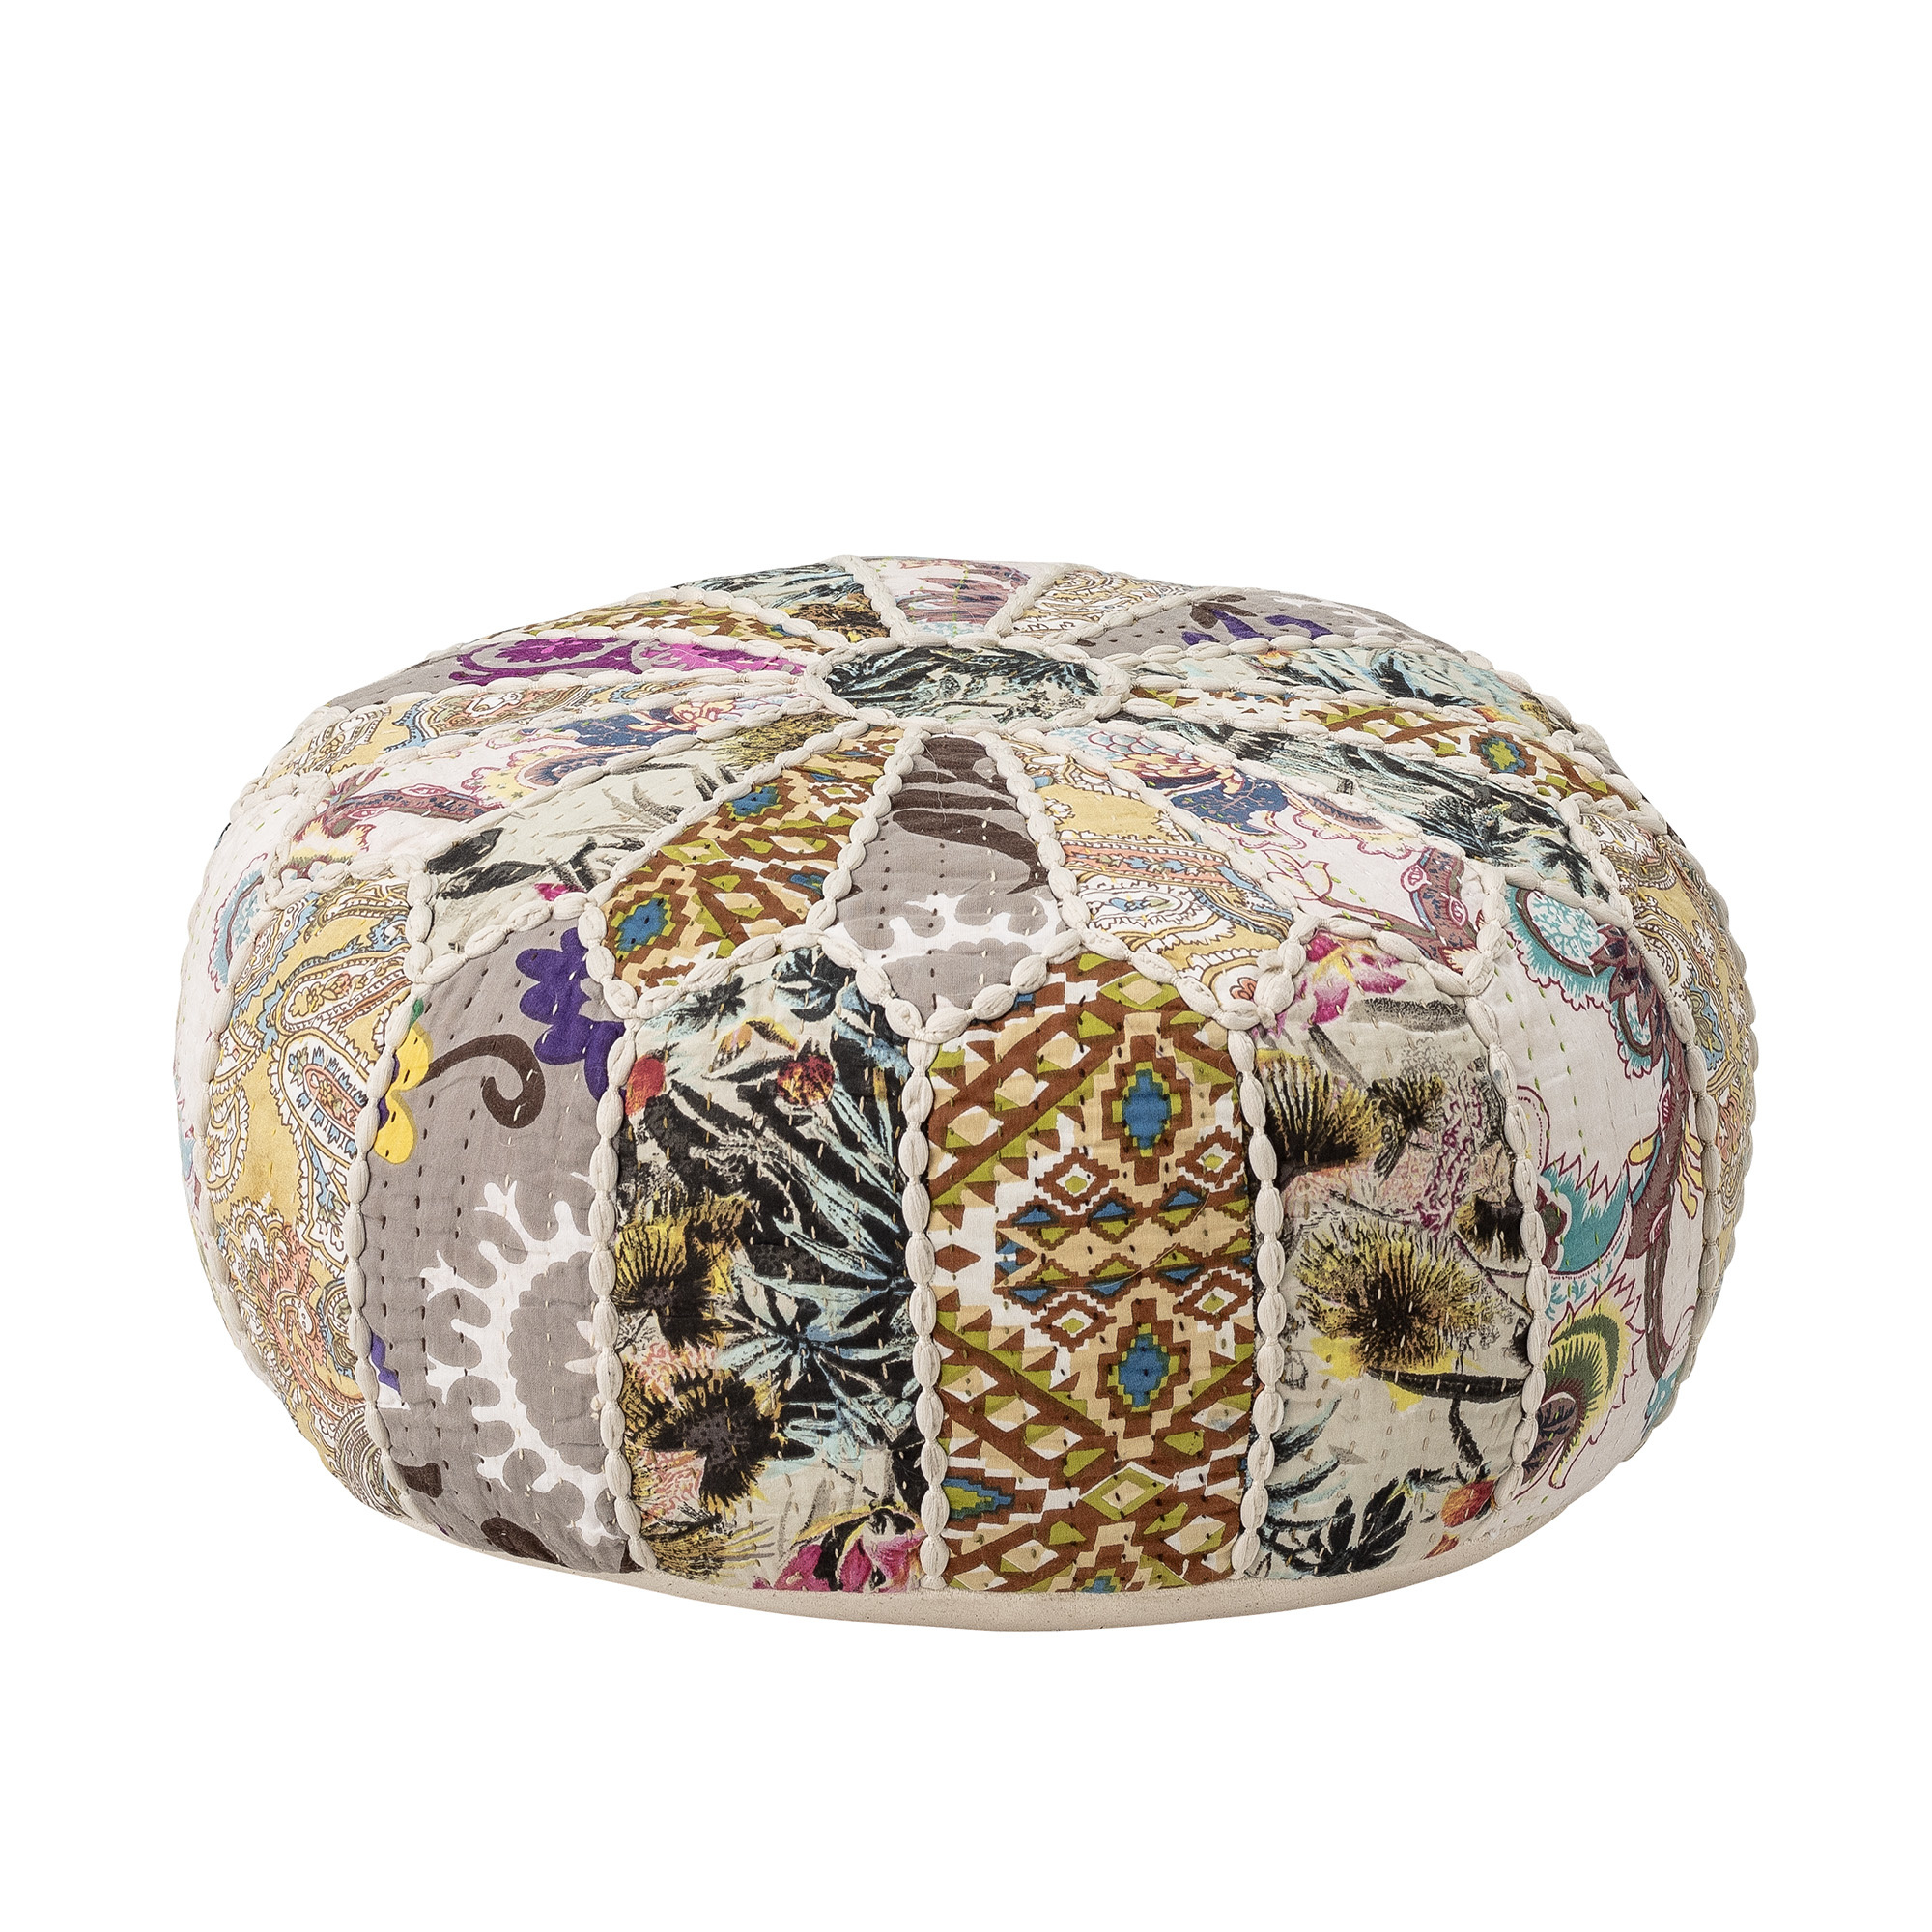 Bloomingville Pouf, Cotton- multi-color - Ø45xH20cm - Bloomingville